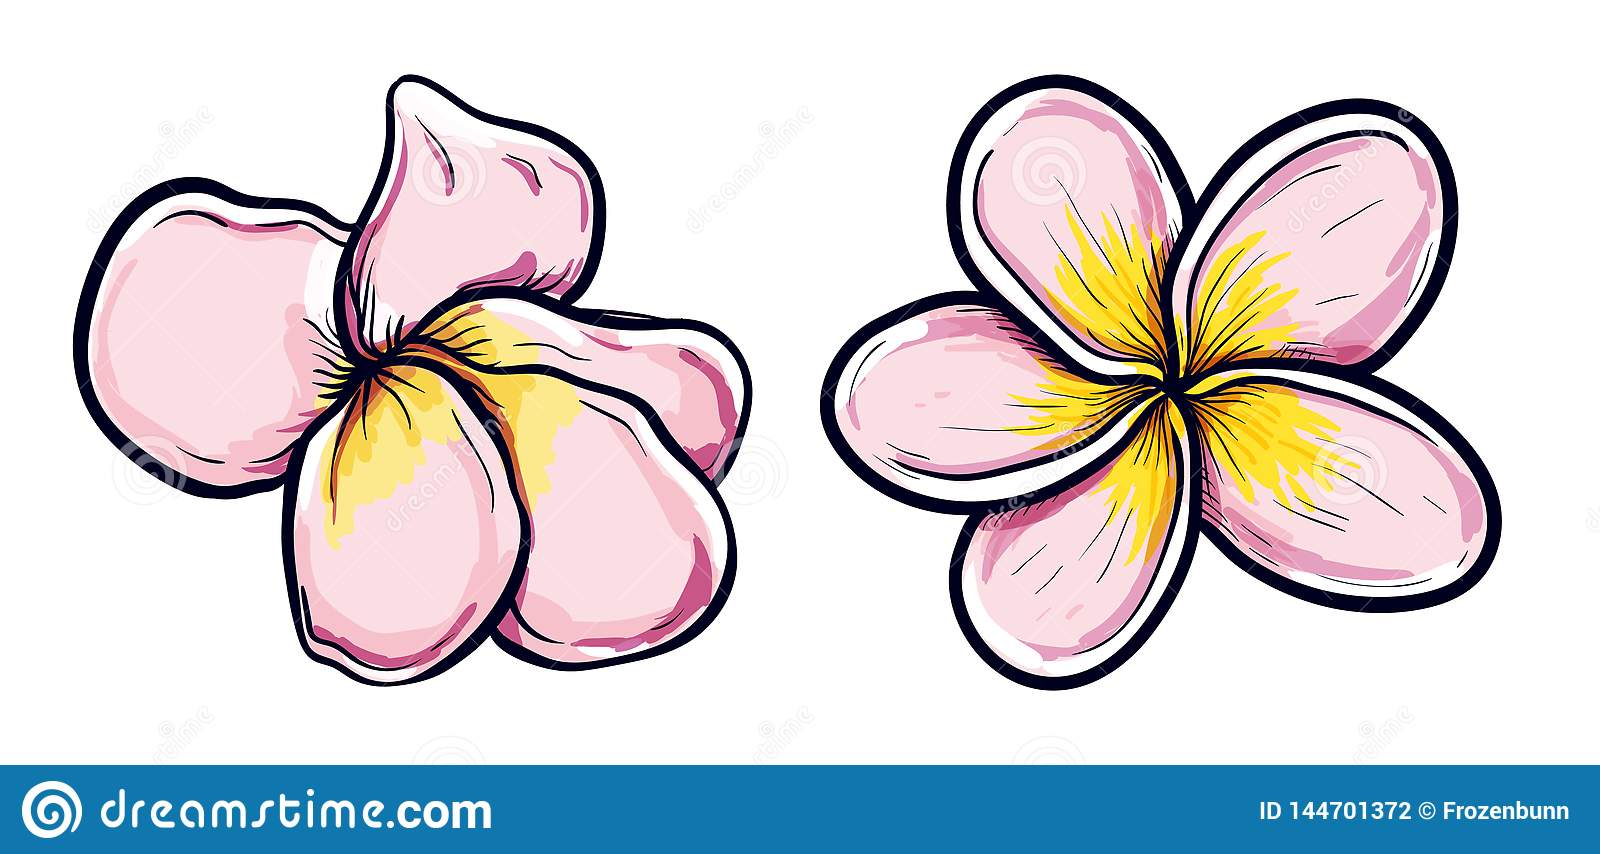 White And Yellow Plumeria Flowers In Drawing Style On White Background Vector Illustration Set Tropical Flowering Plants Stock Vector Illustration Of Frangipani Beautiful 144701372